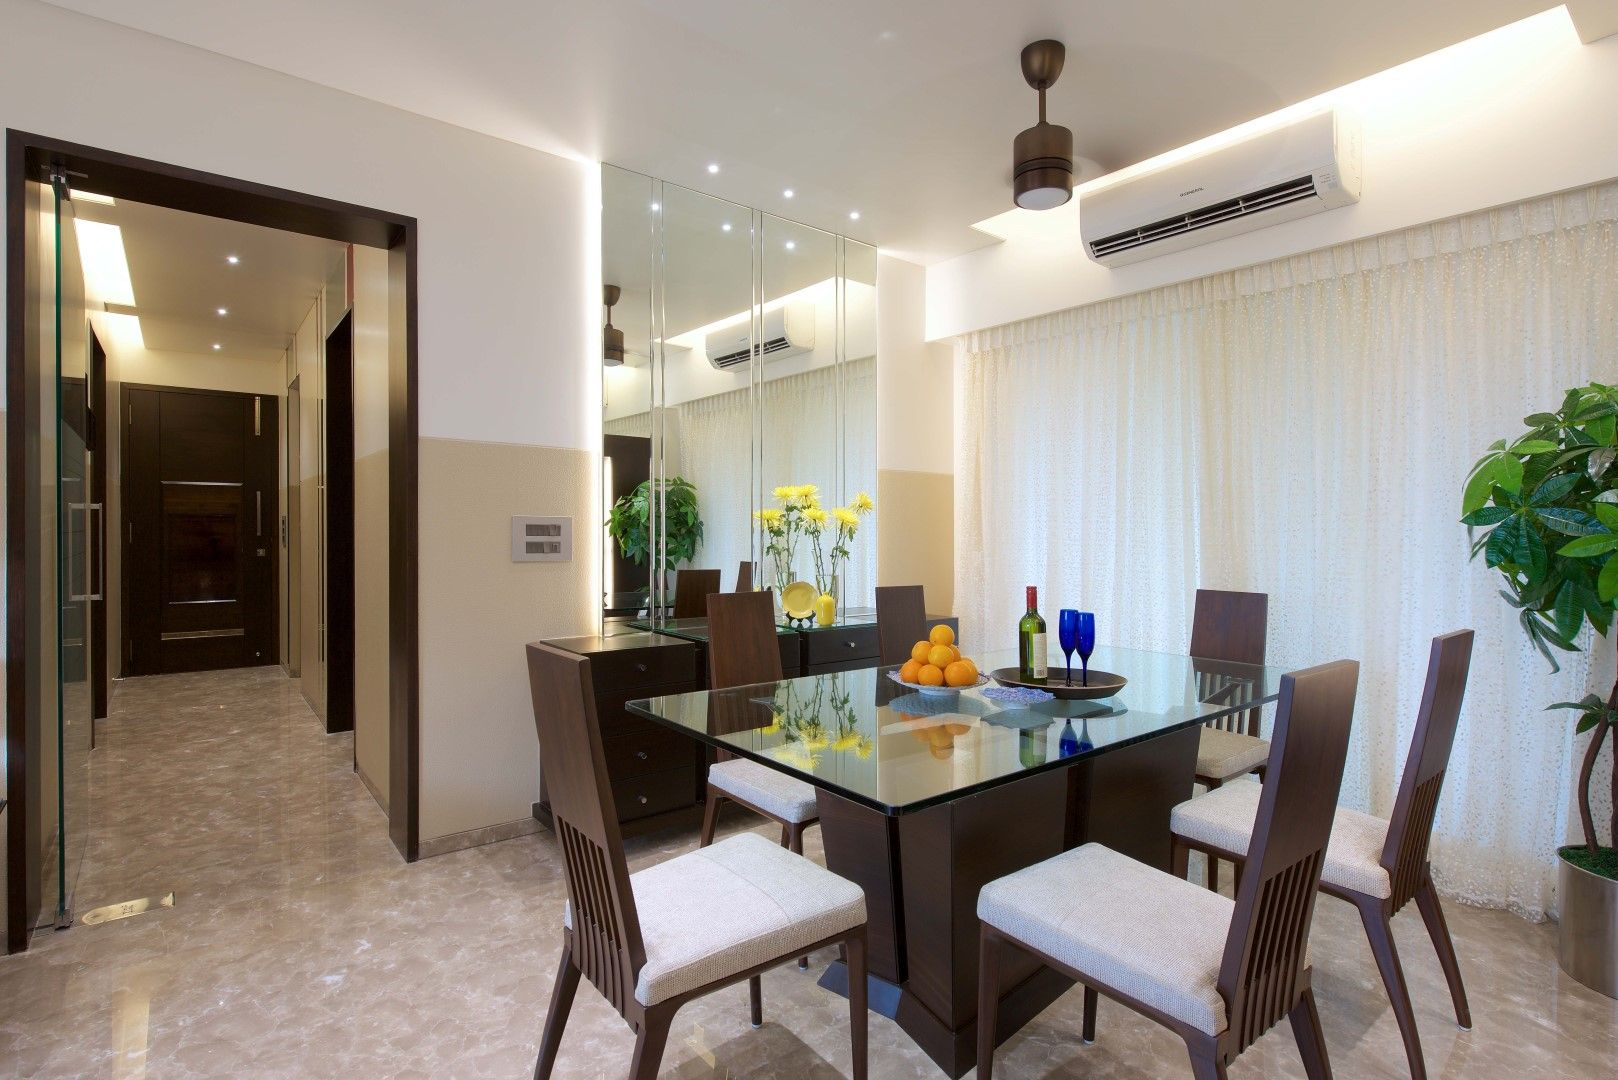 bhk apartment interiors at yari road amit shastri architects the project also designs pinterest rh cz